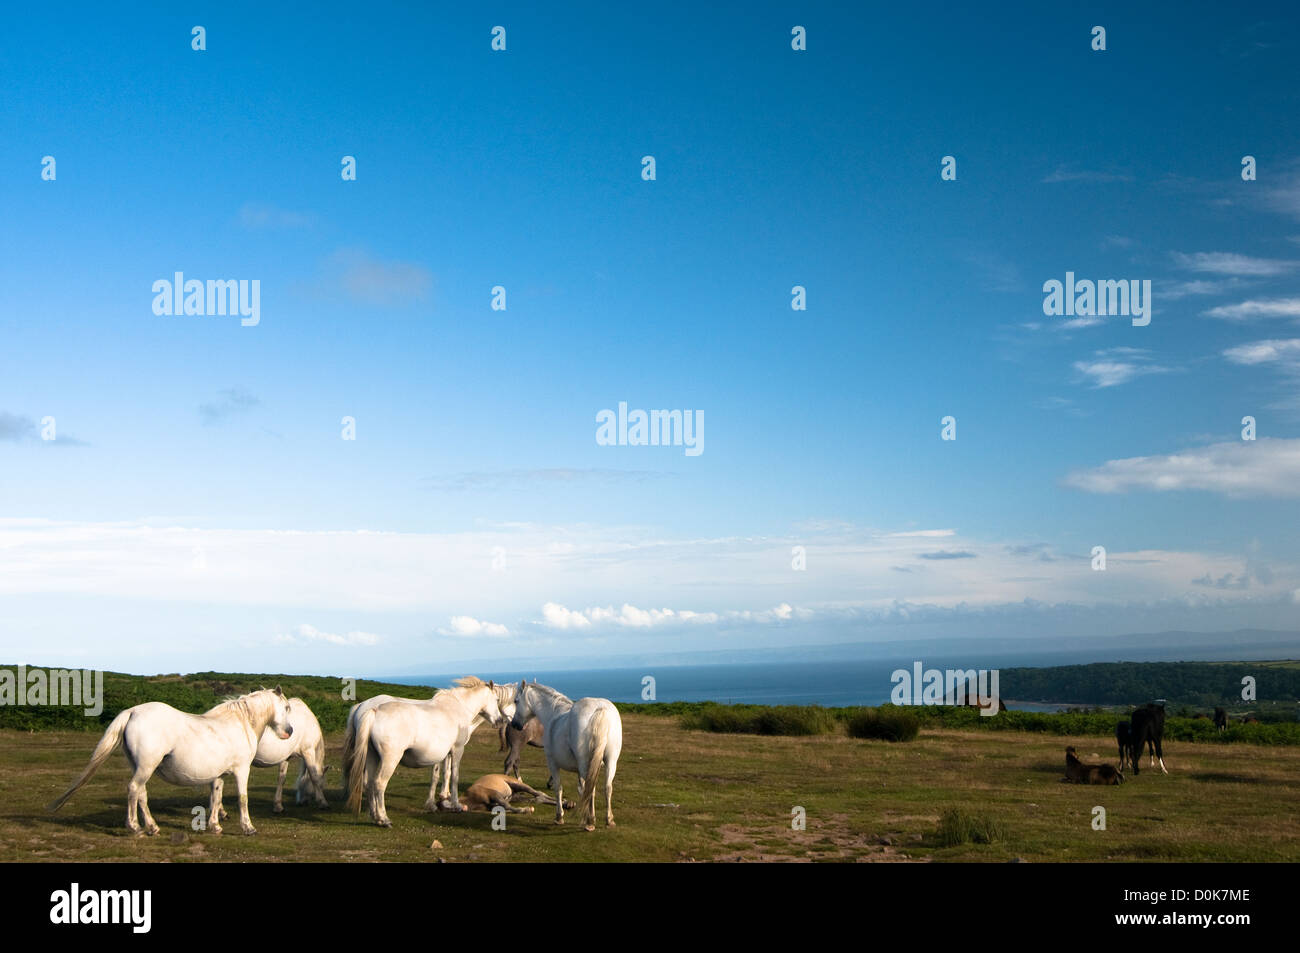 Wild horses on a welsh cliff. - Stock Image